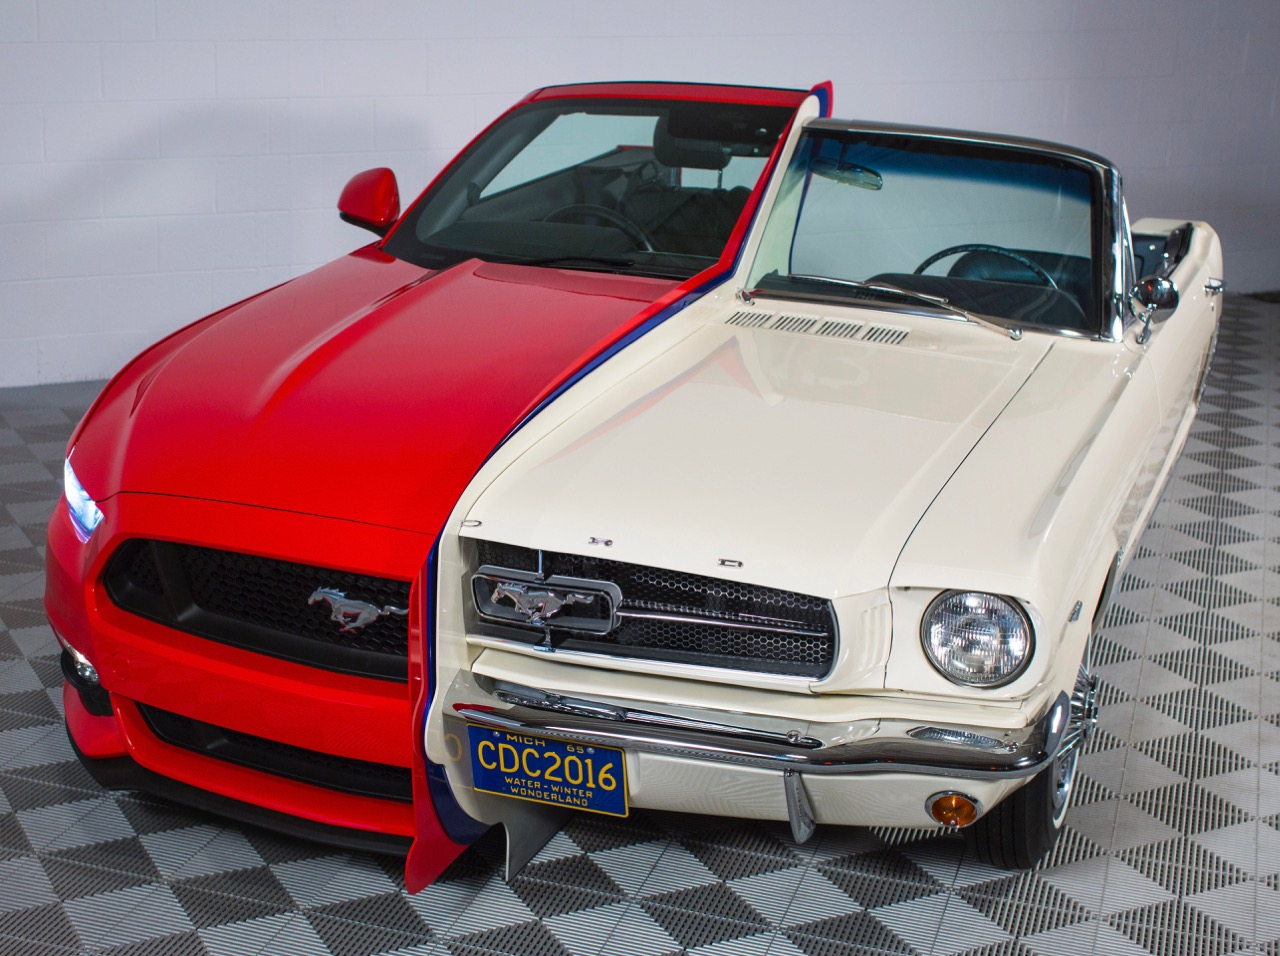 Split personality: 2015 and 1965 Ford Mustangs combined to showcase technology | Ford photos